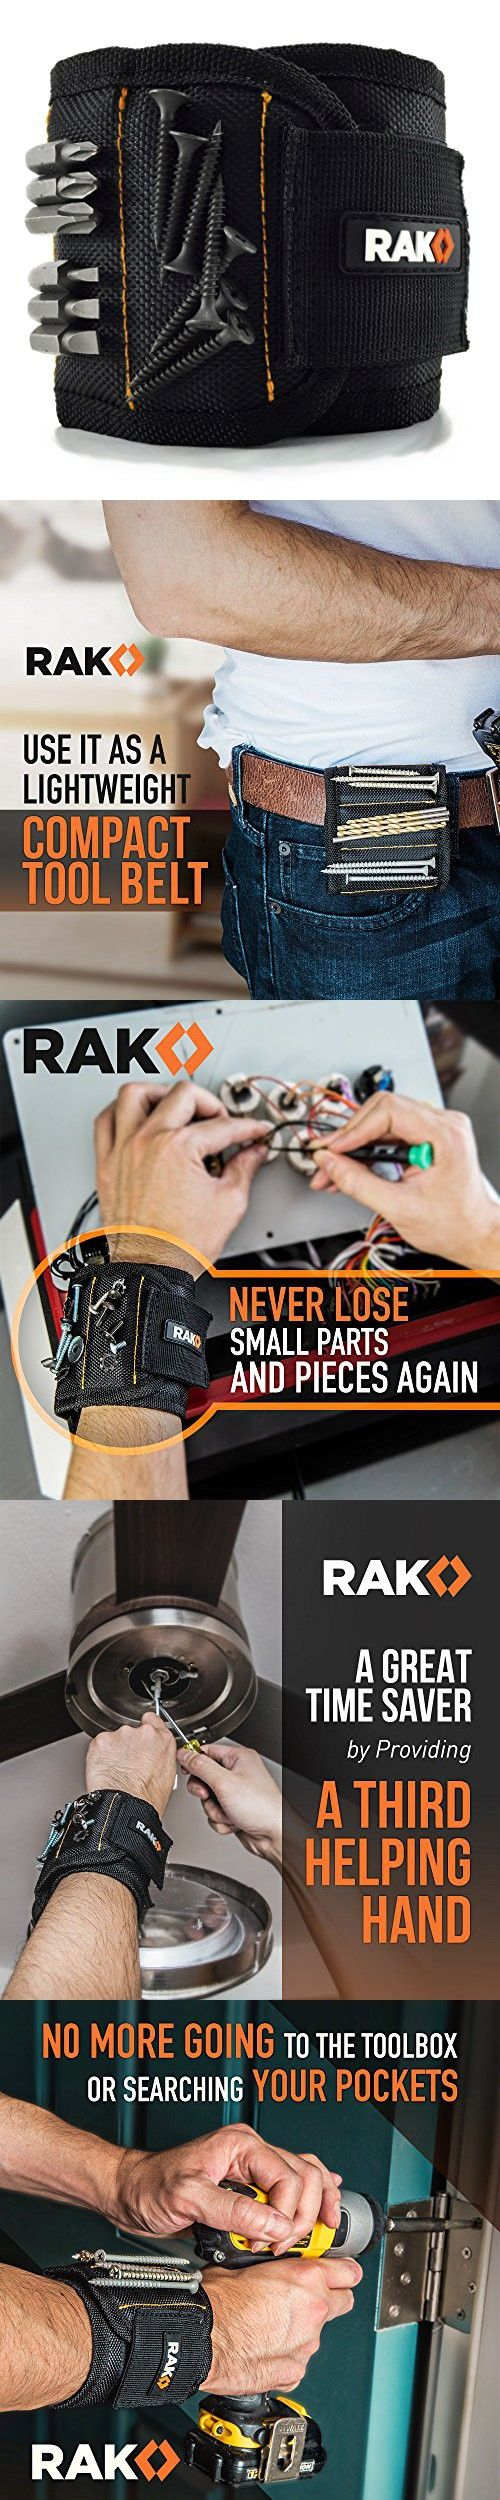 Rak Magnetic Wristband V2 With Strong Magnets For Holding S Nails Drill Bits Best Unique Tool Gift Diy Handyman Father Dad Husband